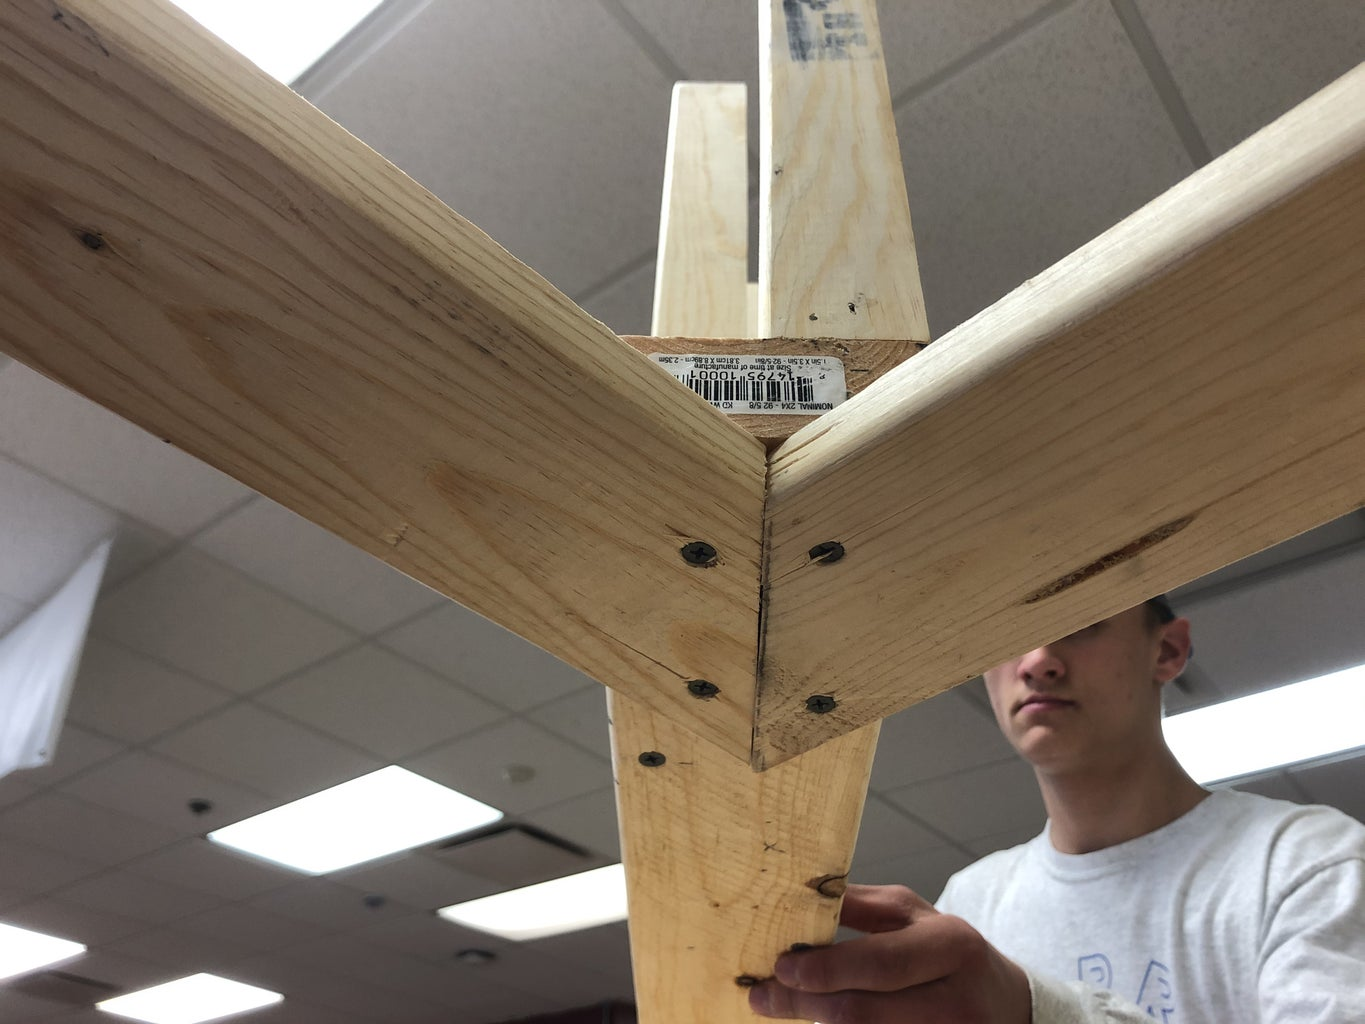 Connecting Legs to Main Beam